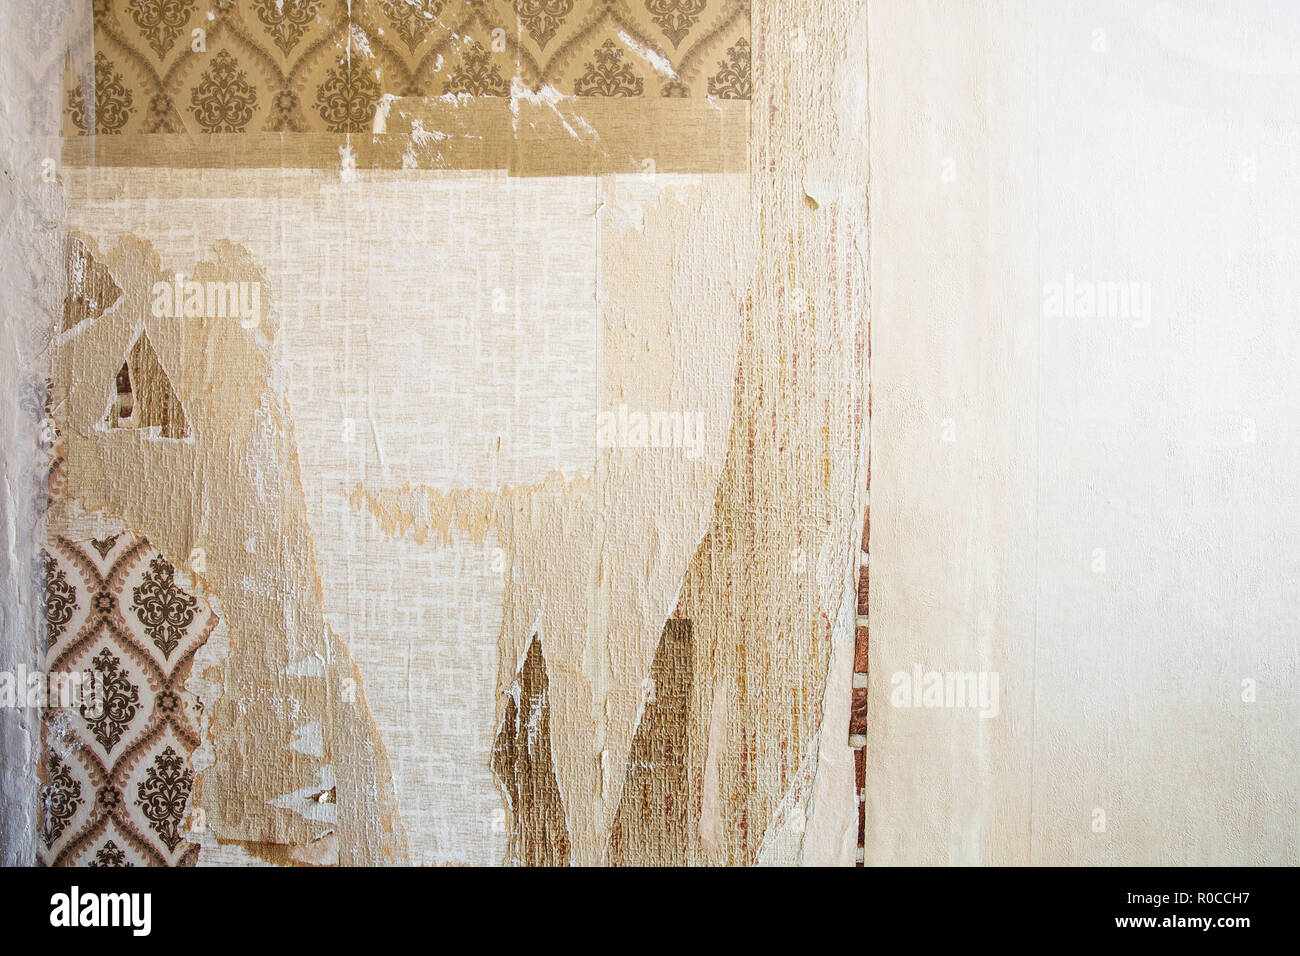 Aged room wall background with torn vintage wallpaper, old background texture - Stock Image